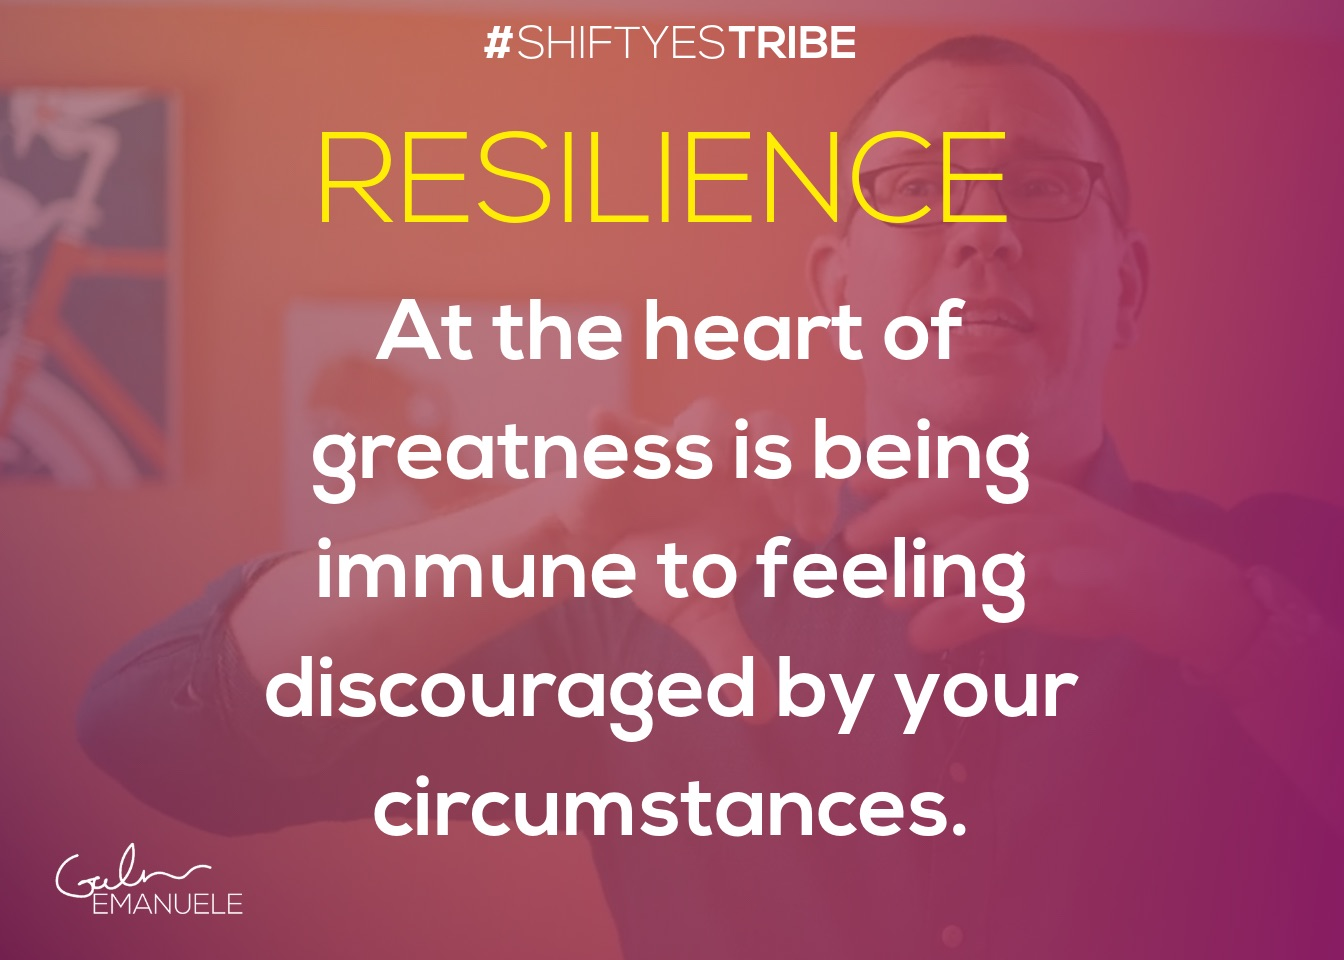 Galen emanuele #shiftyestribe shift yes tribe resilience growth mindset july 2019.jpg